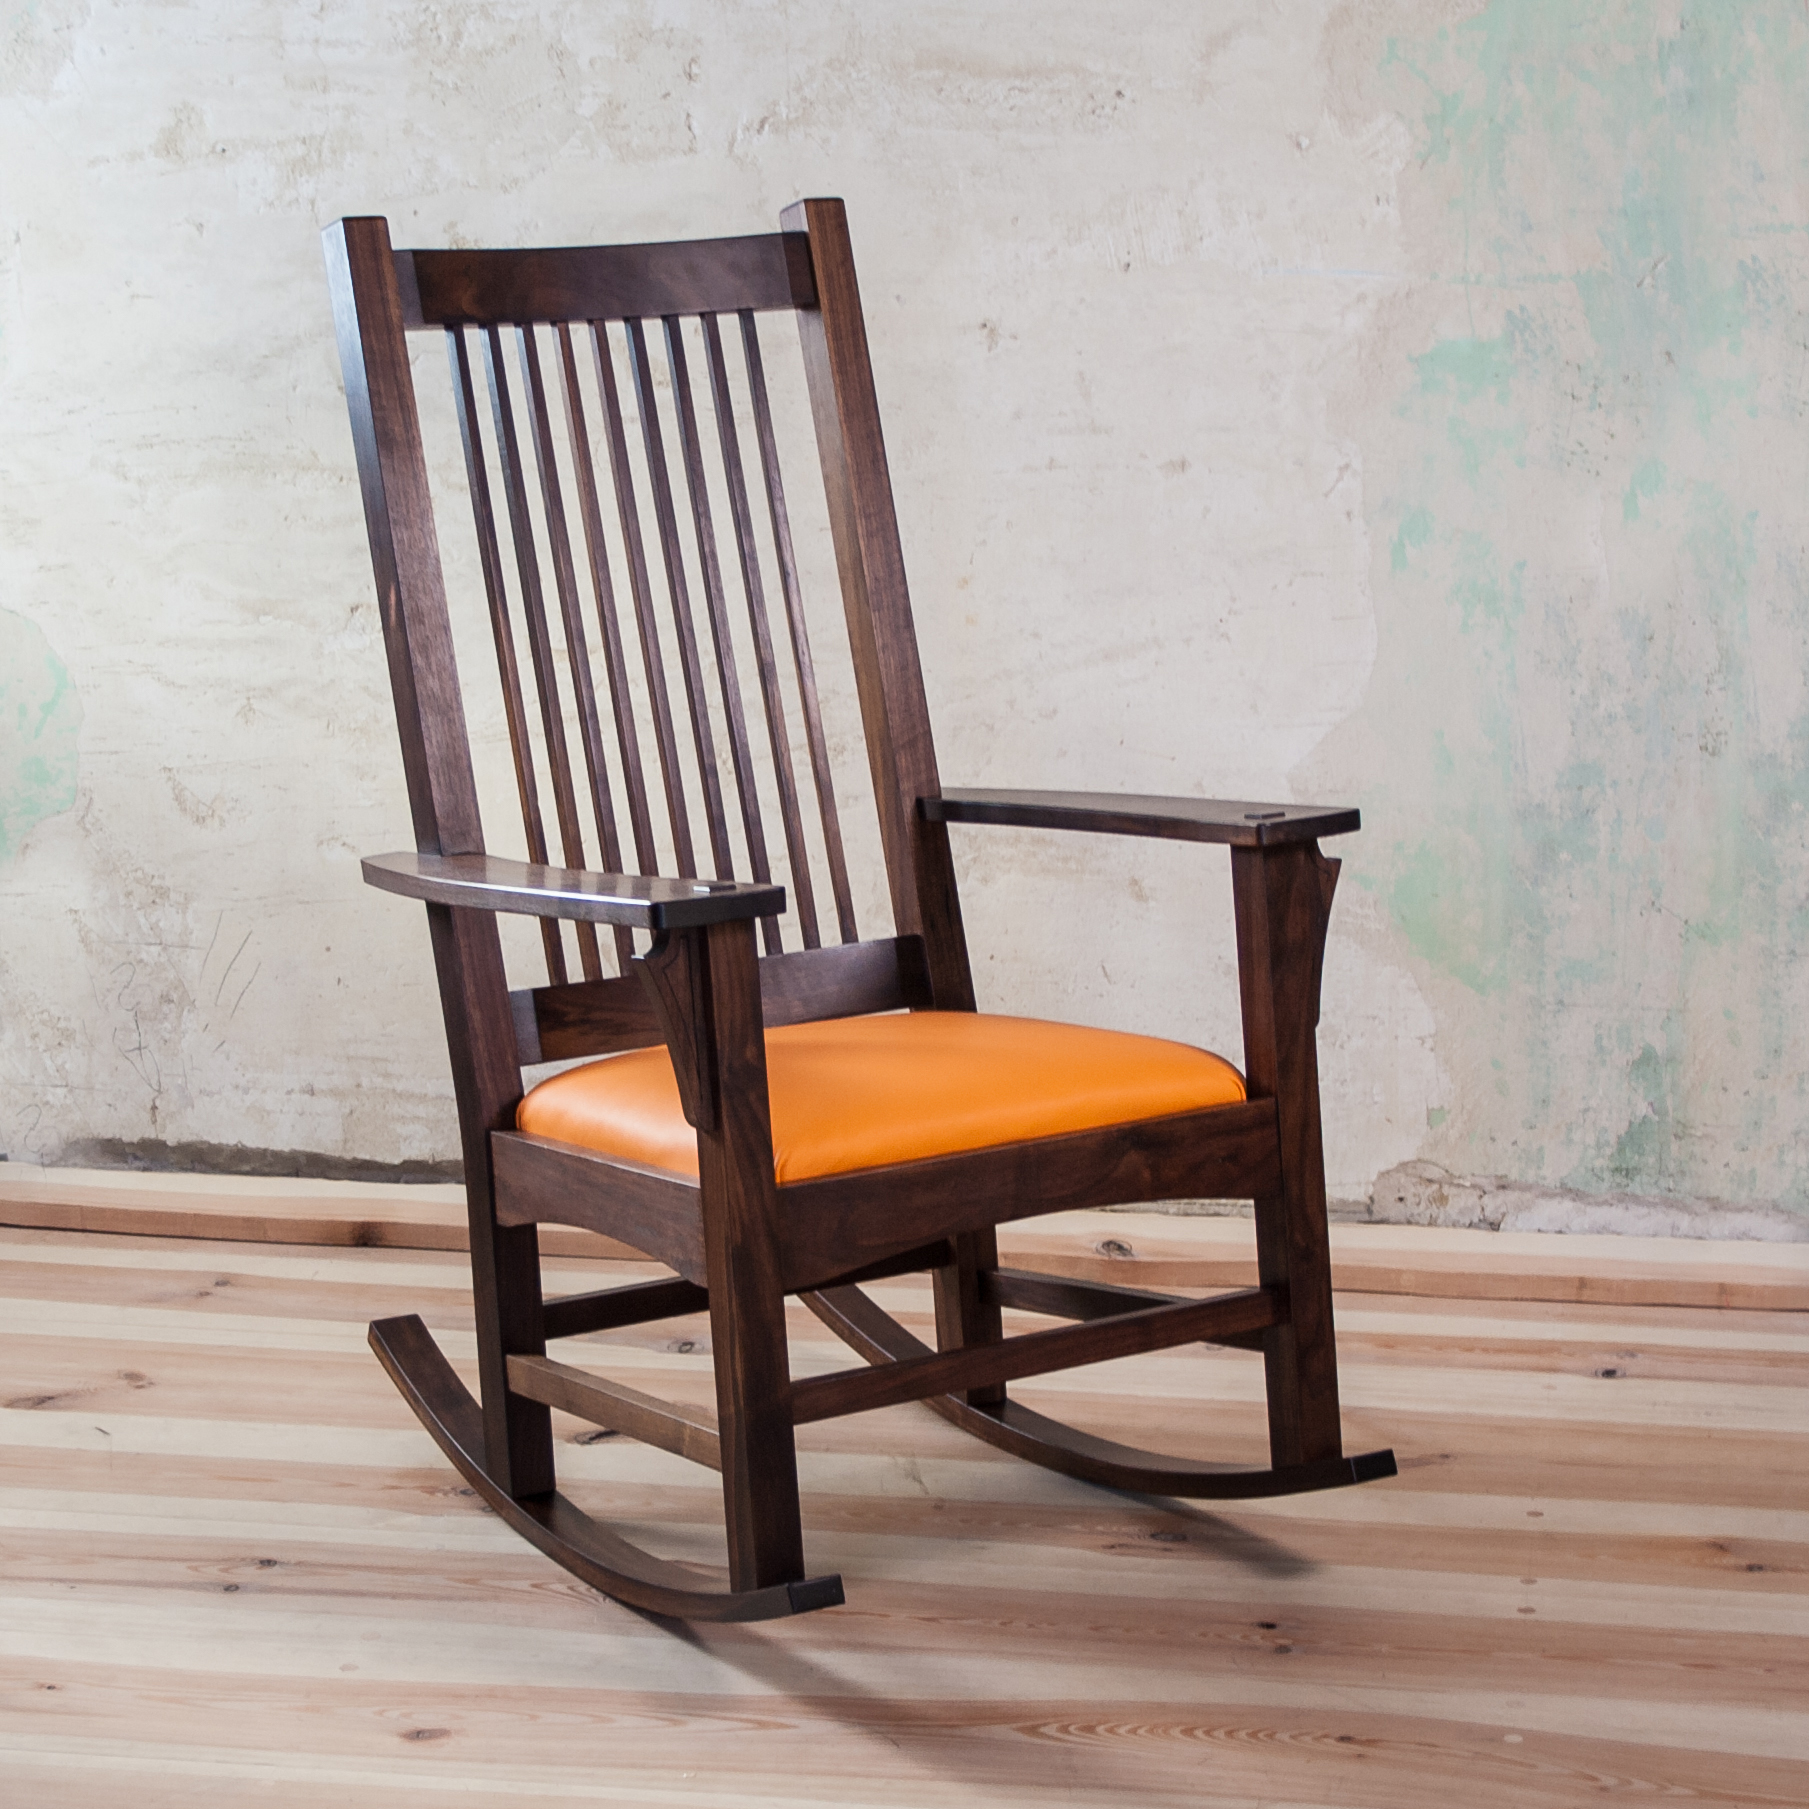 Black Walnut rocking chair, upholstered with coconut fiber and genuine leather, front. Fauteuil à bascule en noyer